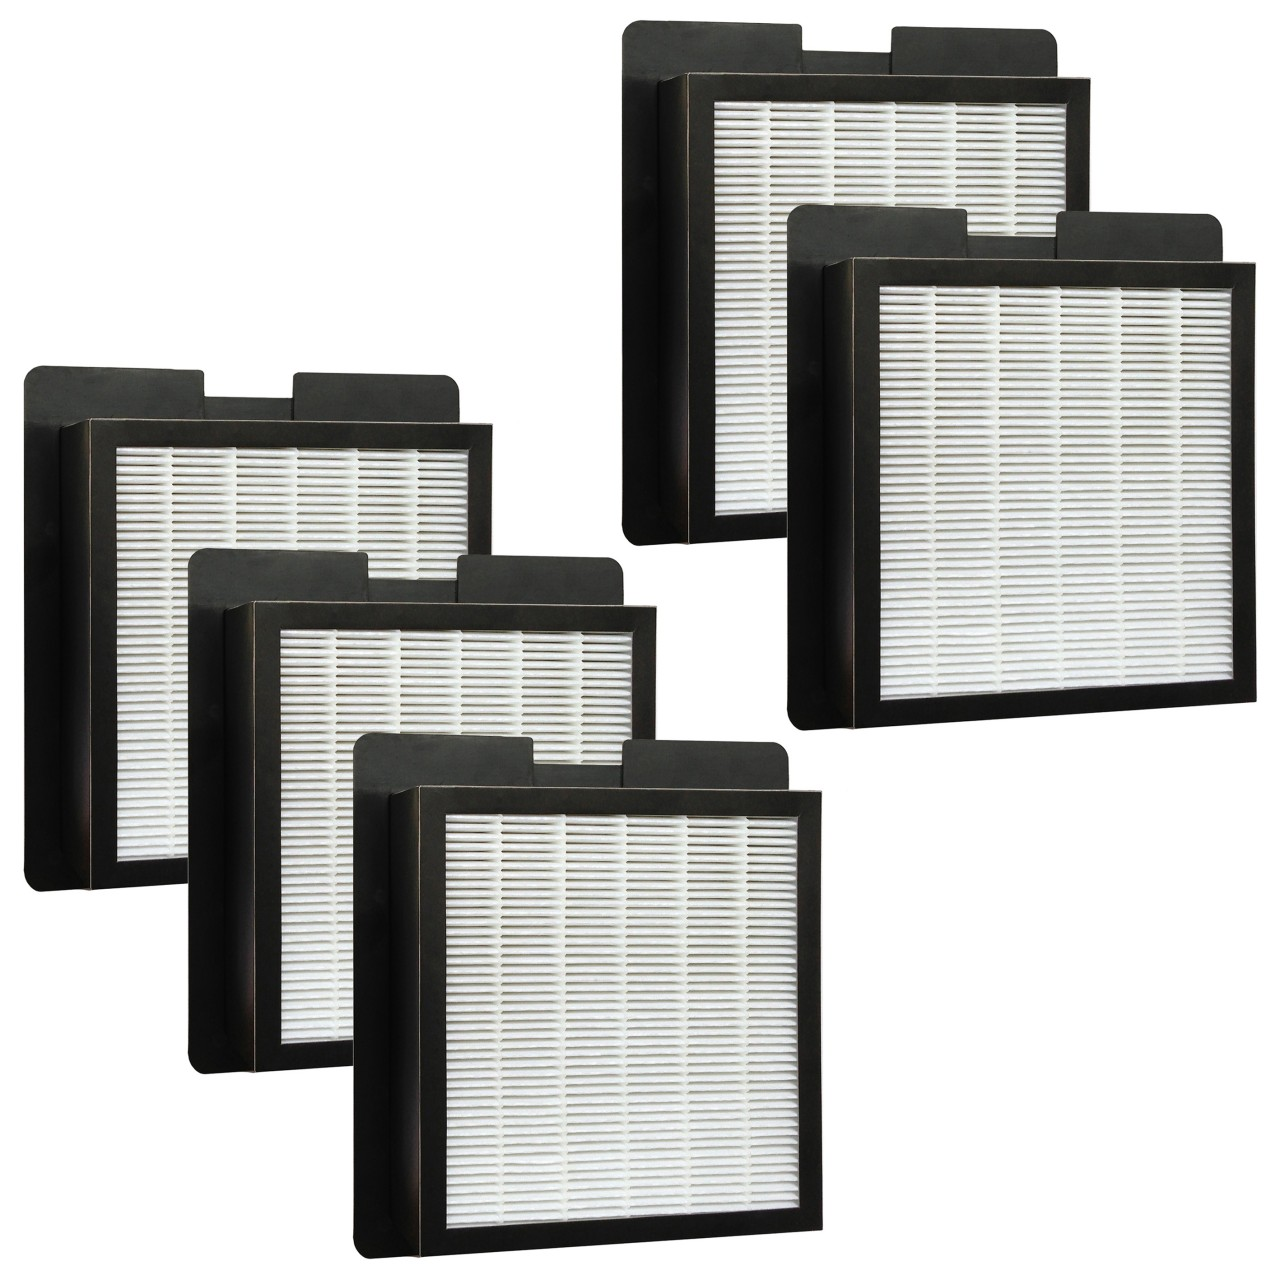 5 hepa filters for fresh air by ecoquest and xl 15 by